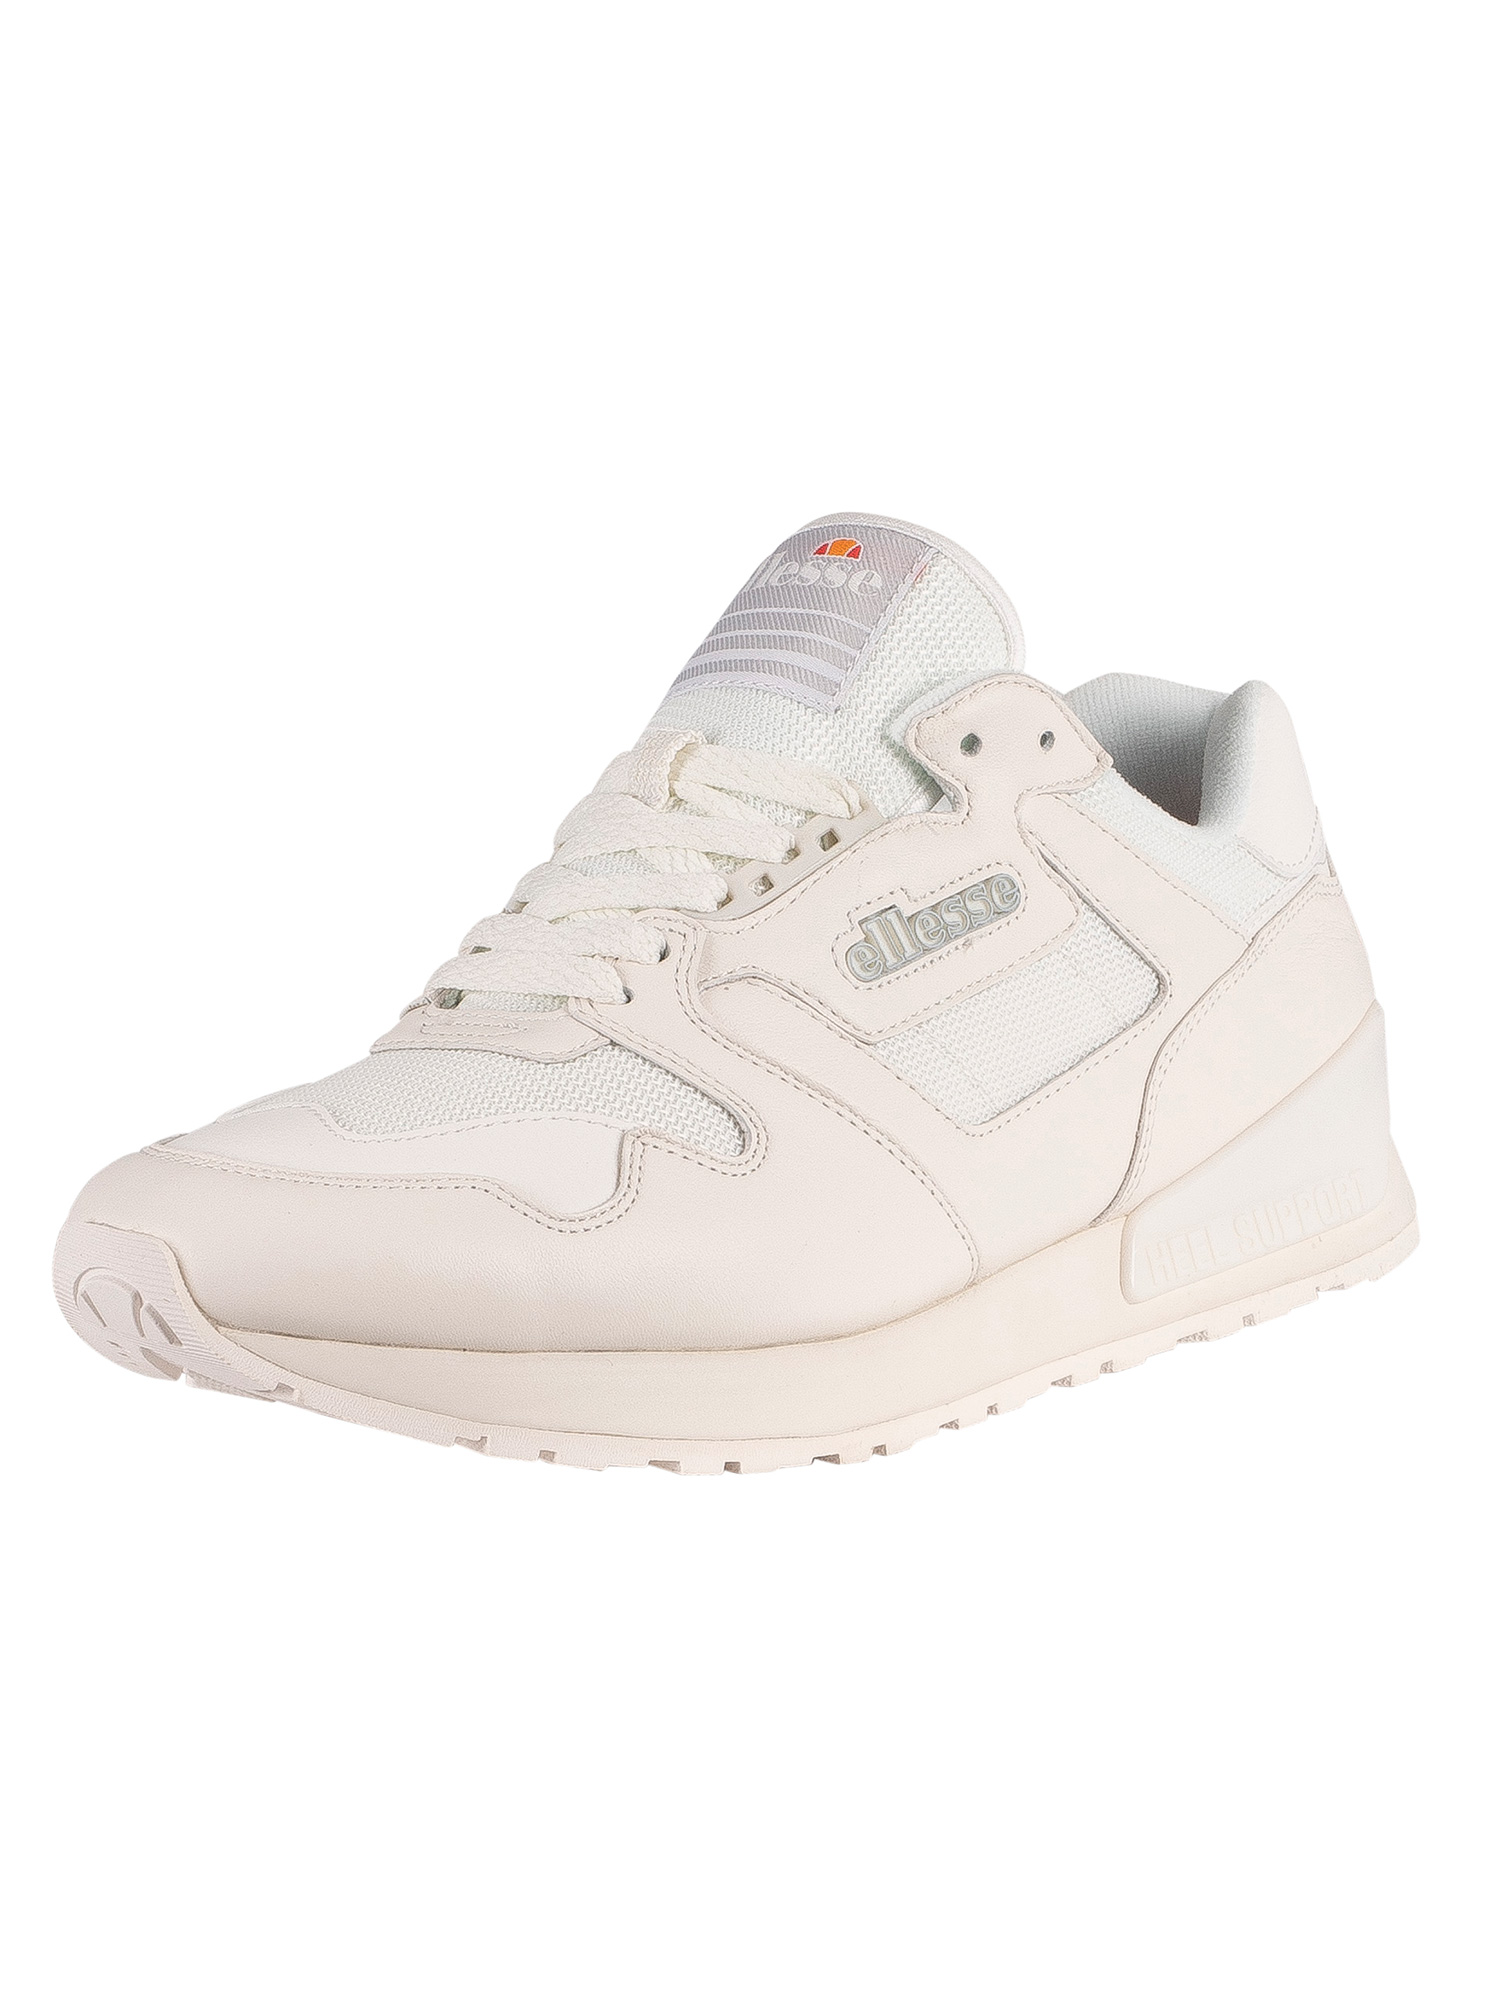 Ellesse 147 Leather Trainers - White/White